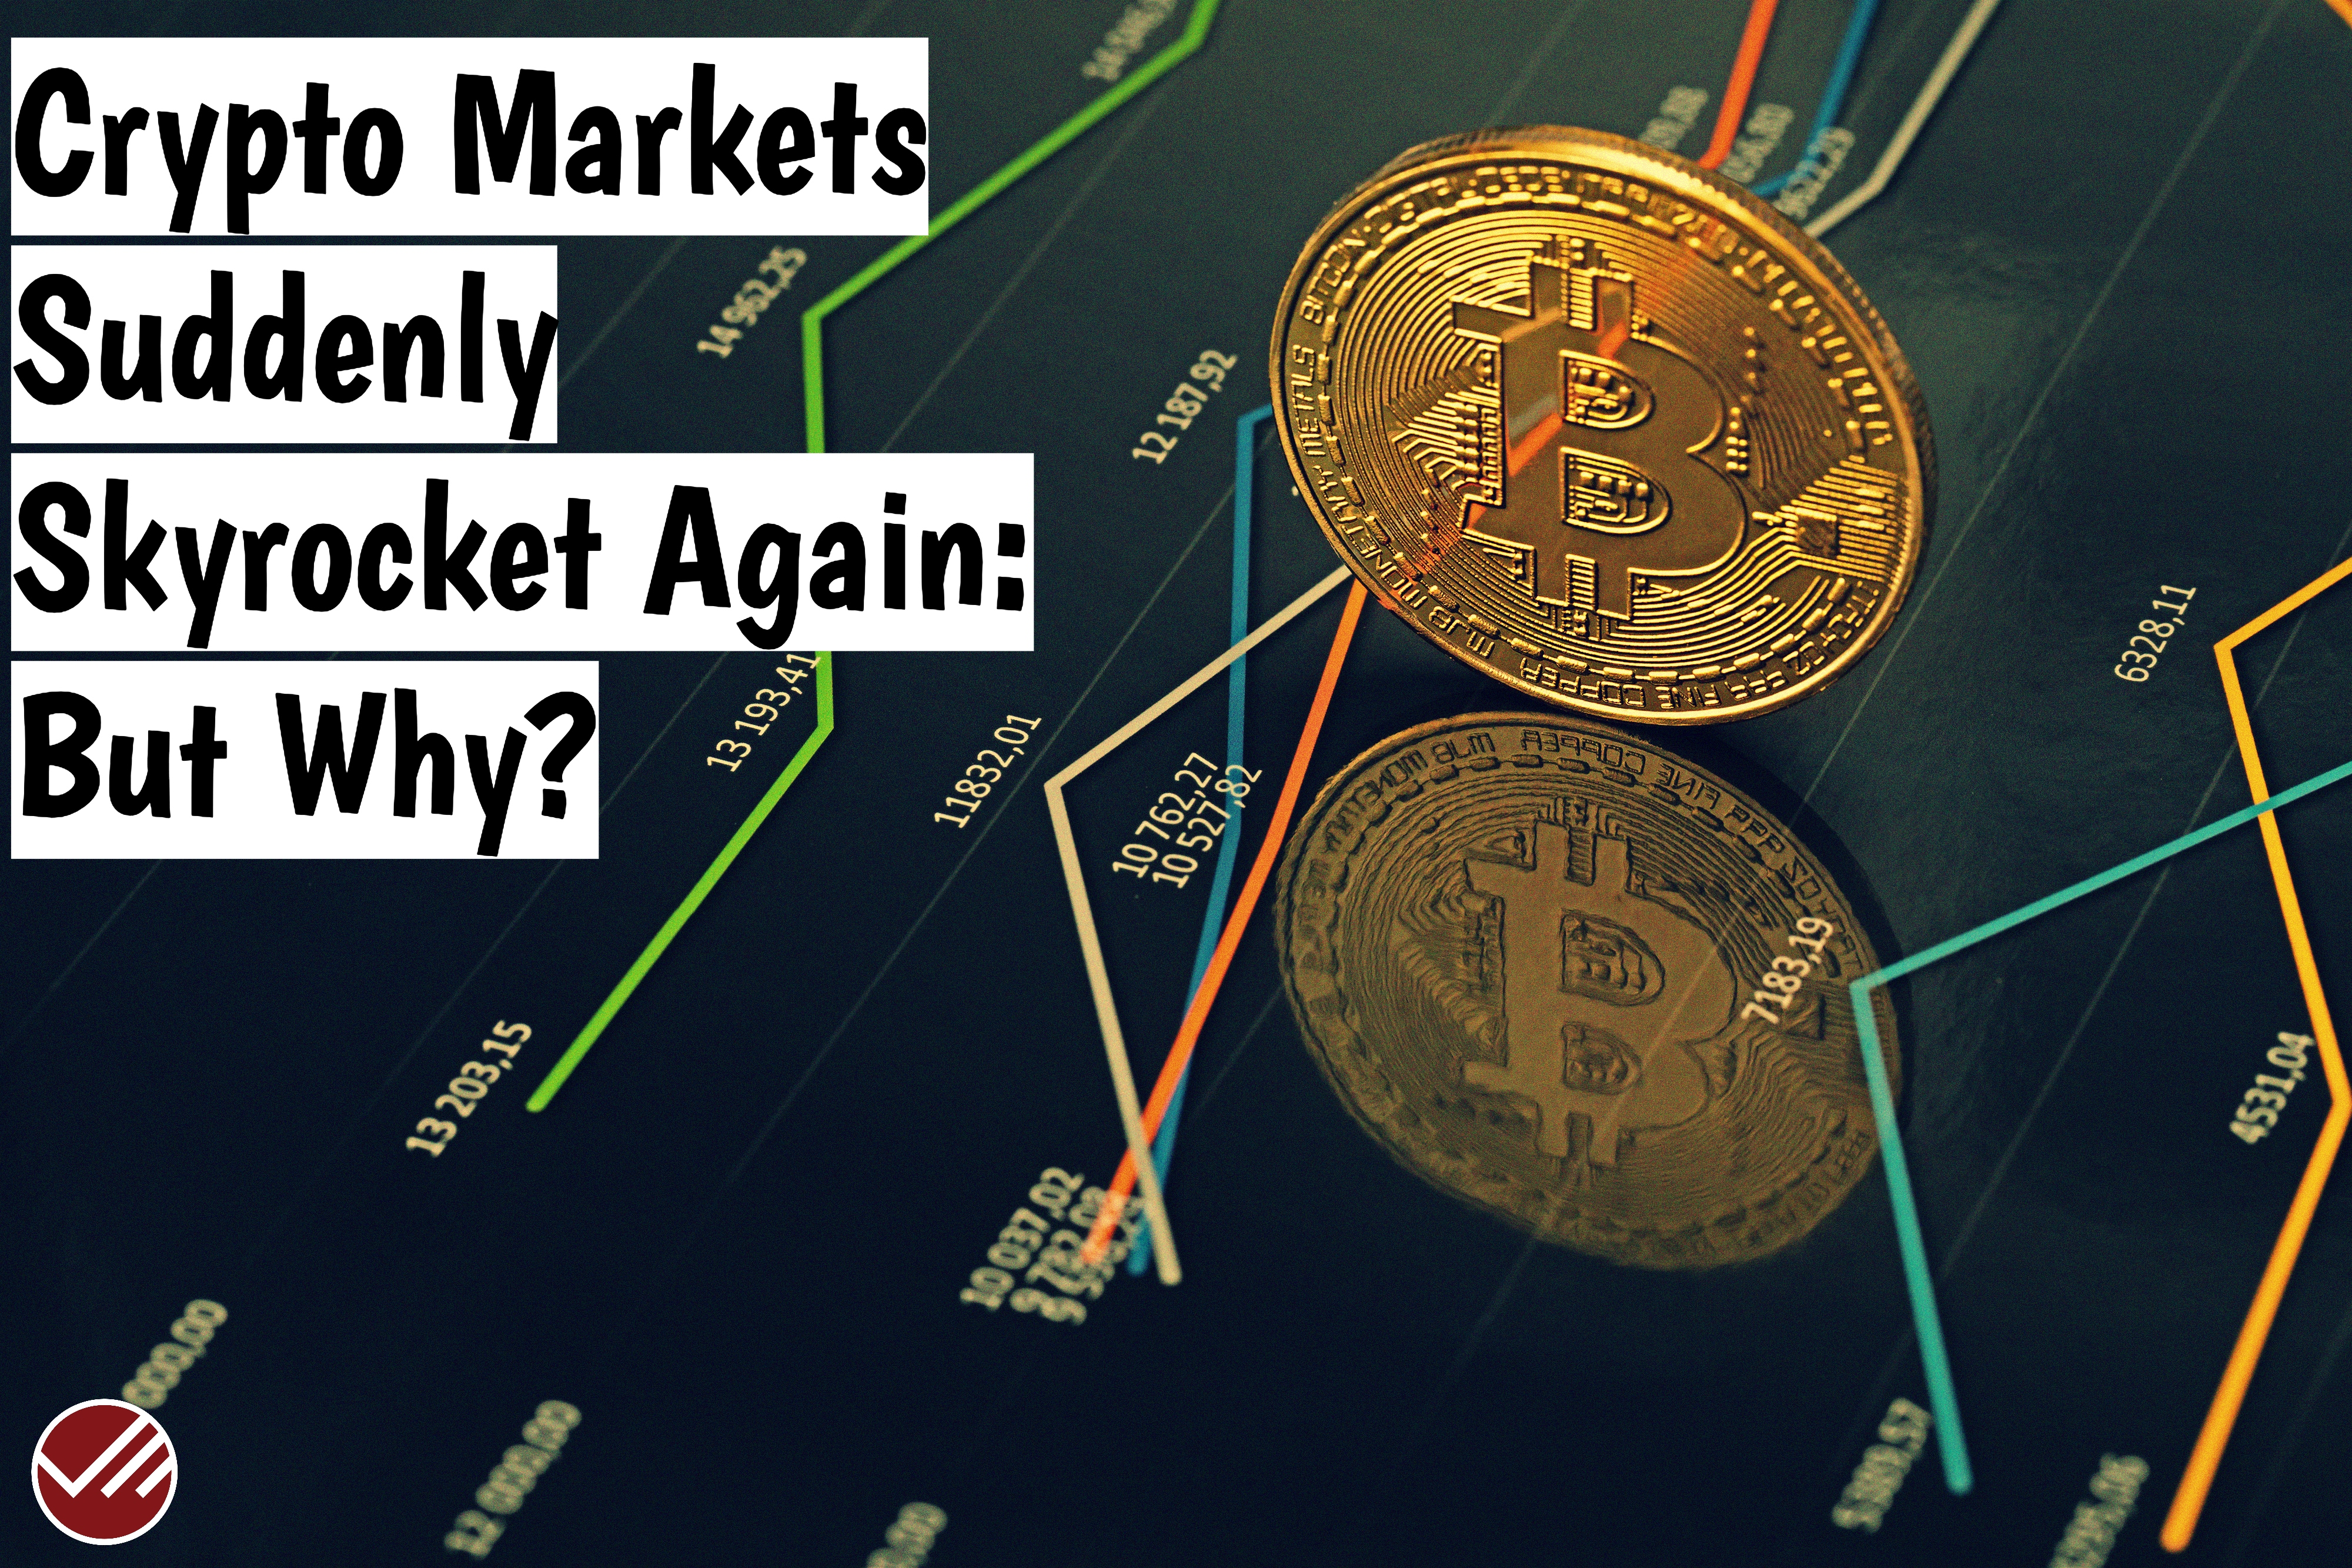 Crypto Markets Suddenly Skyrocket Again: But Why?